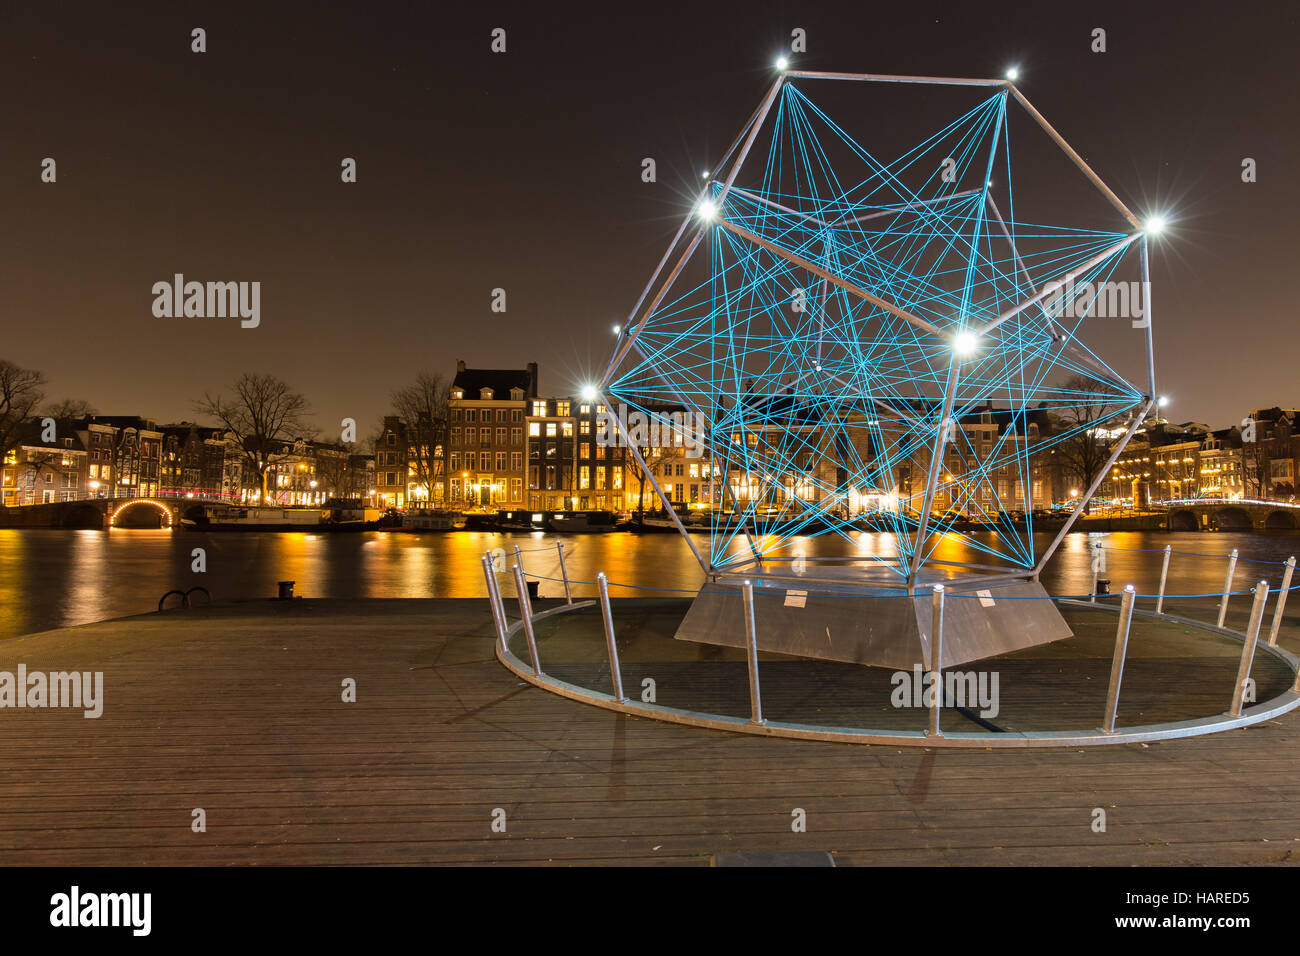 The Uniting Lightstar, an artwork by Venividimultiplex, decorates the Amstel river bank during the Amsterdam Light - Stock Image